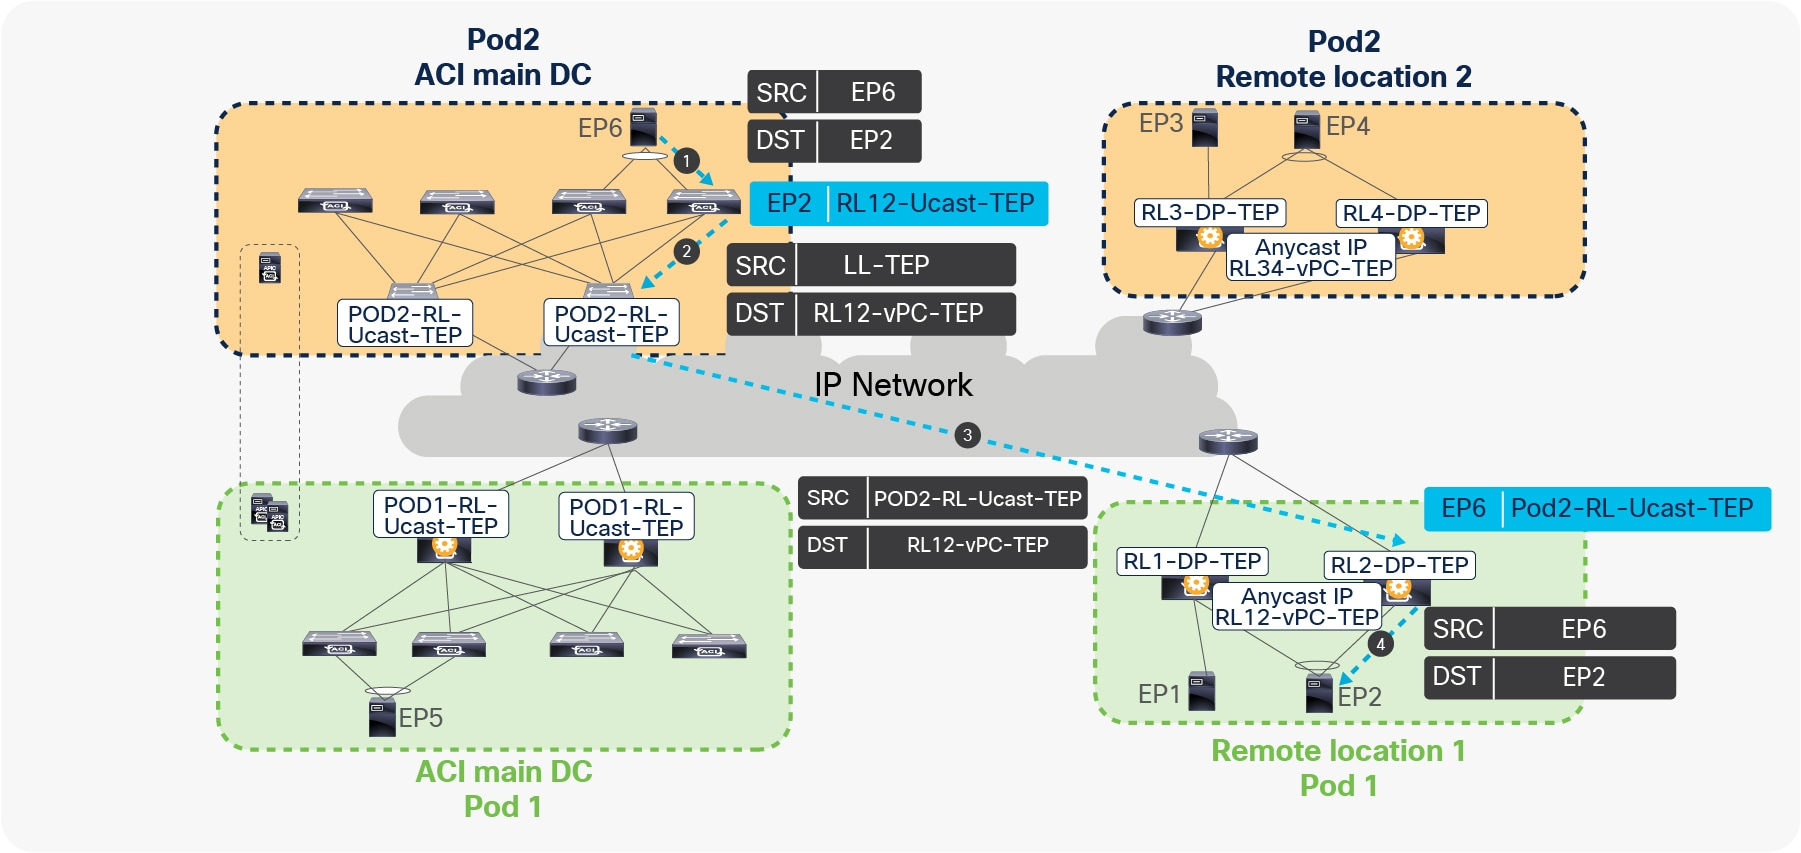 Title: VXLAN tunnels from RL to ACI main DC with Cisco ACI Multi-Site